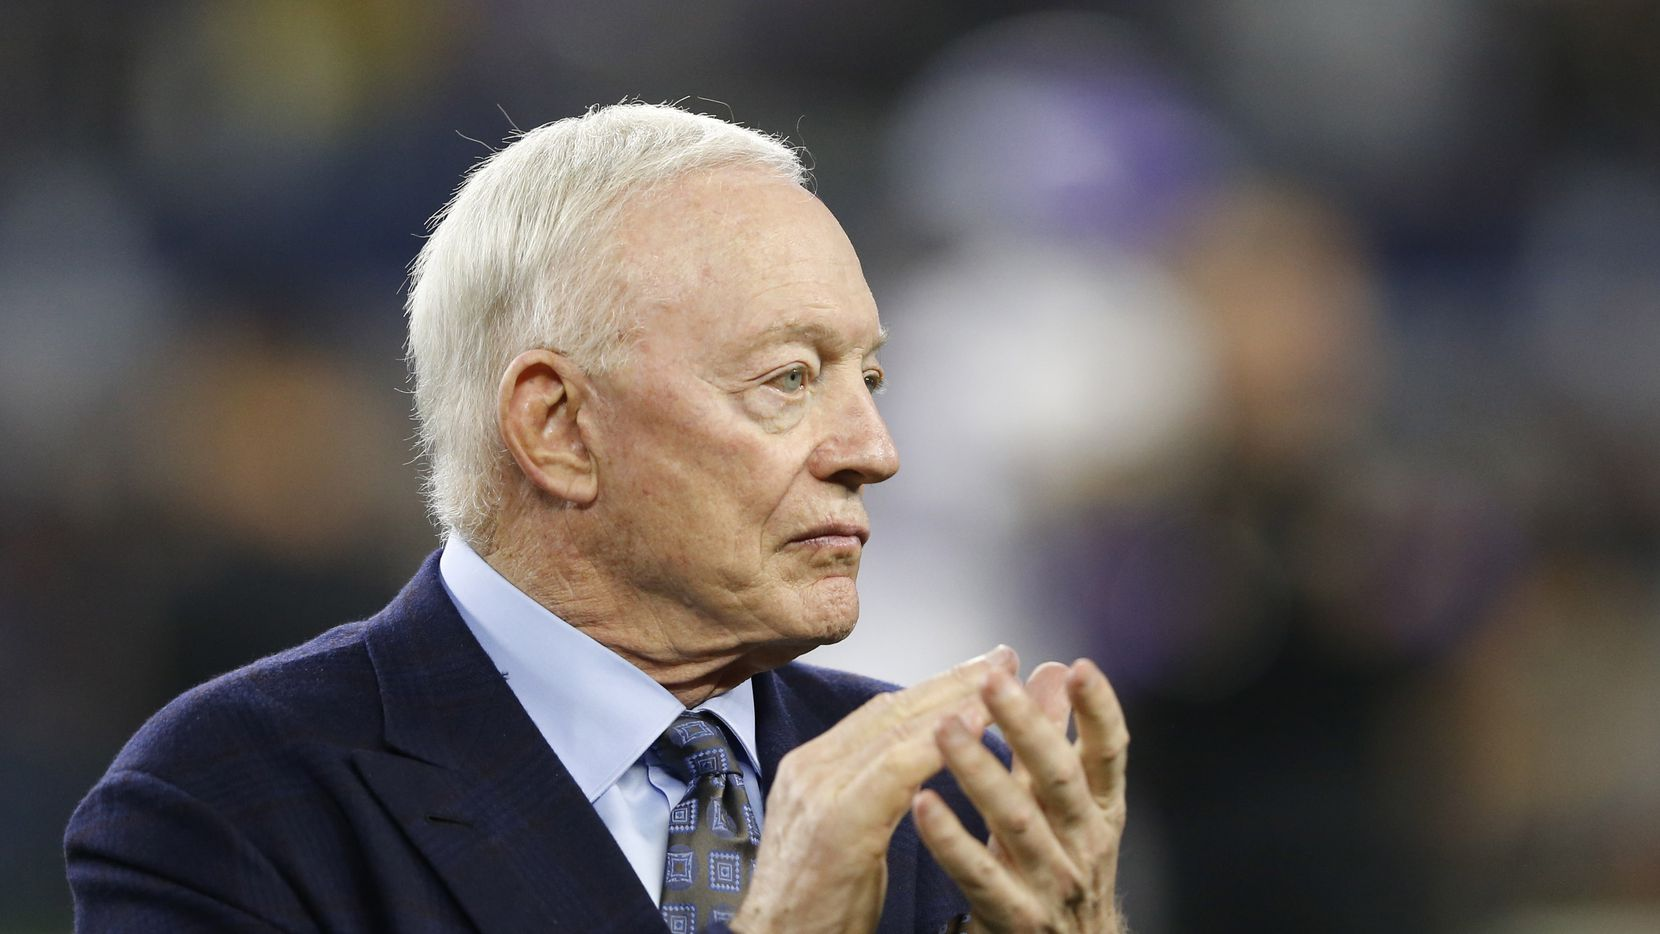 Dallas Cowboys owner Jerry Jones claps as the team takes the field for warmups before a game against the Minnesota Vikings in Arlington, Texas on Sunday, November 10, 2019.